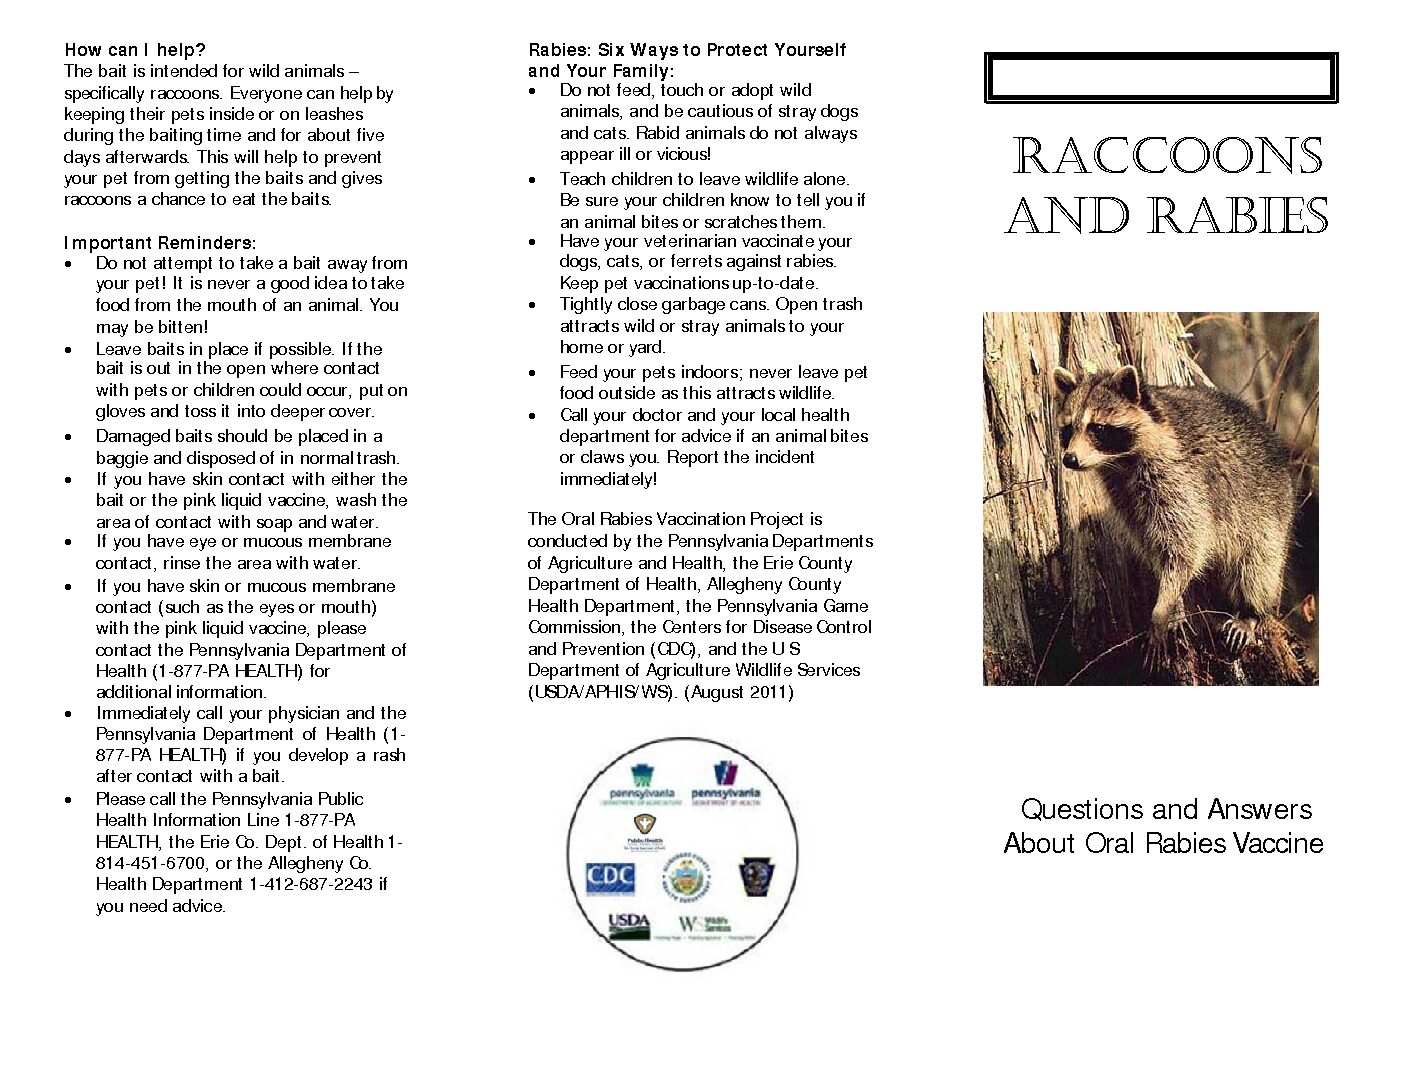 Raccoons and Rabies Pamphlet